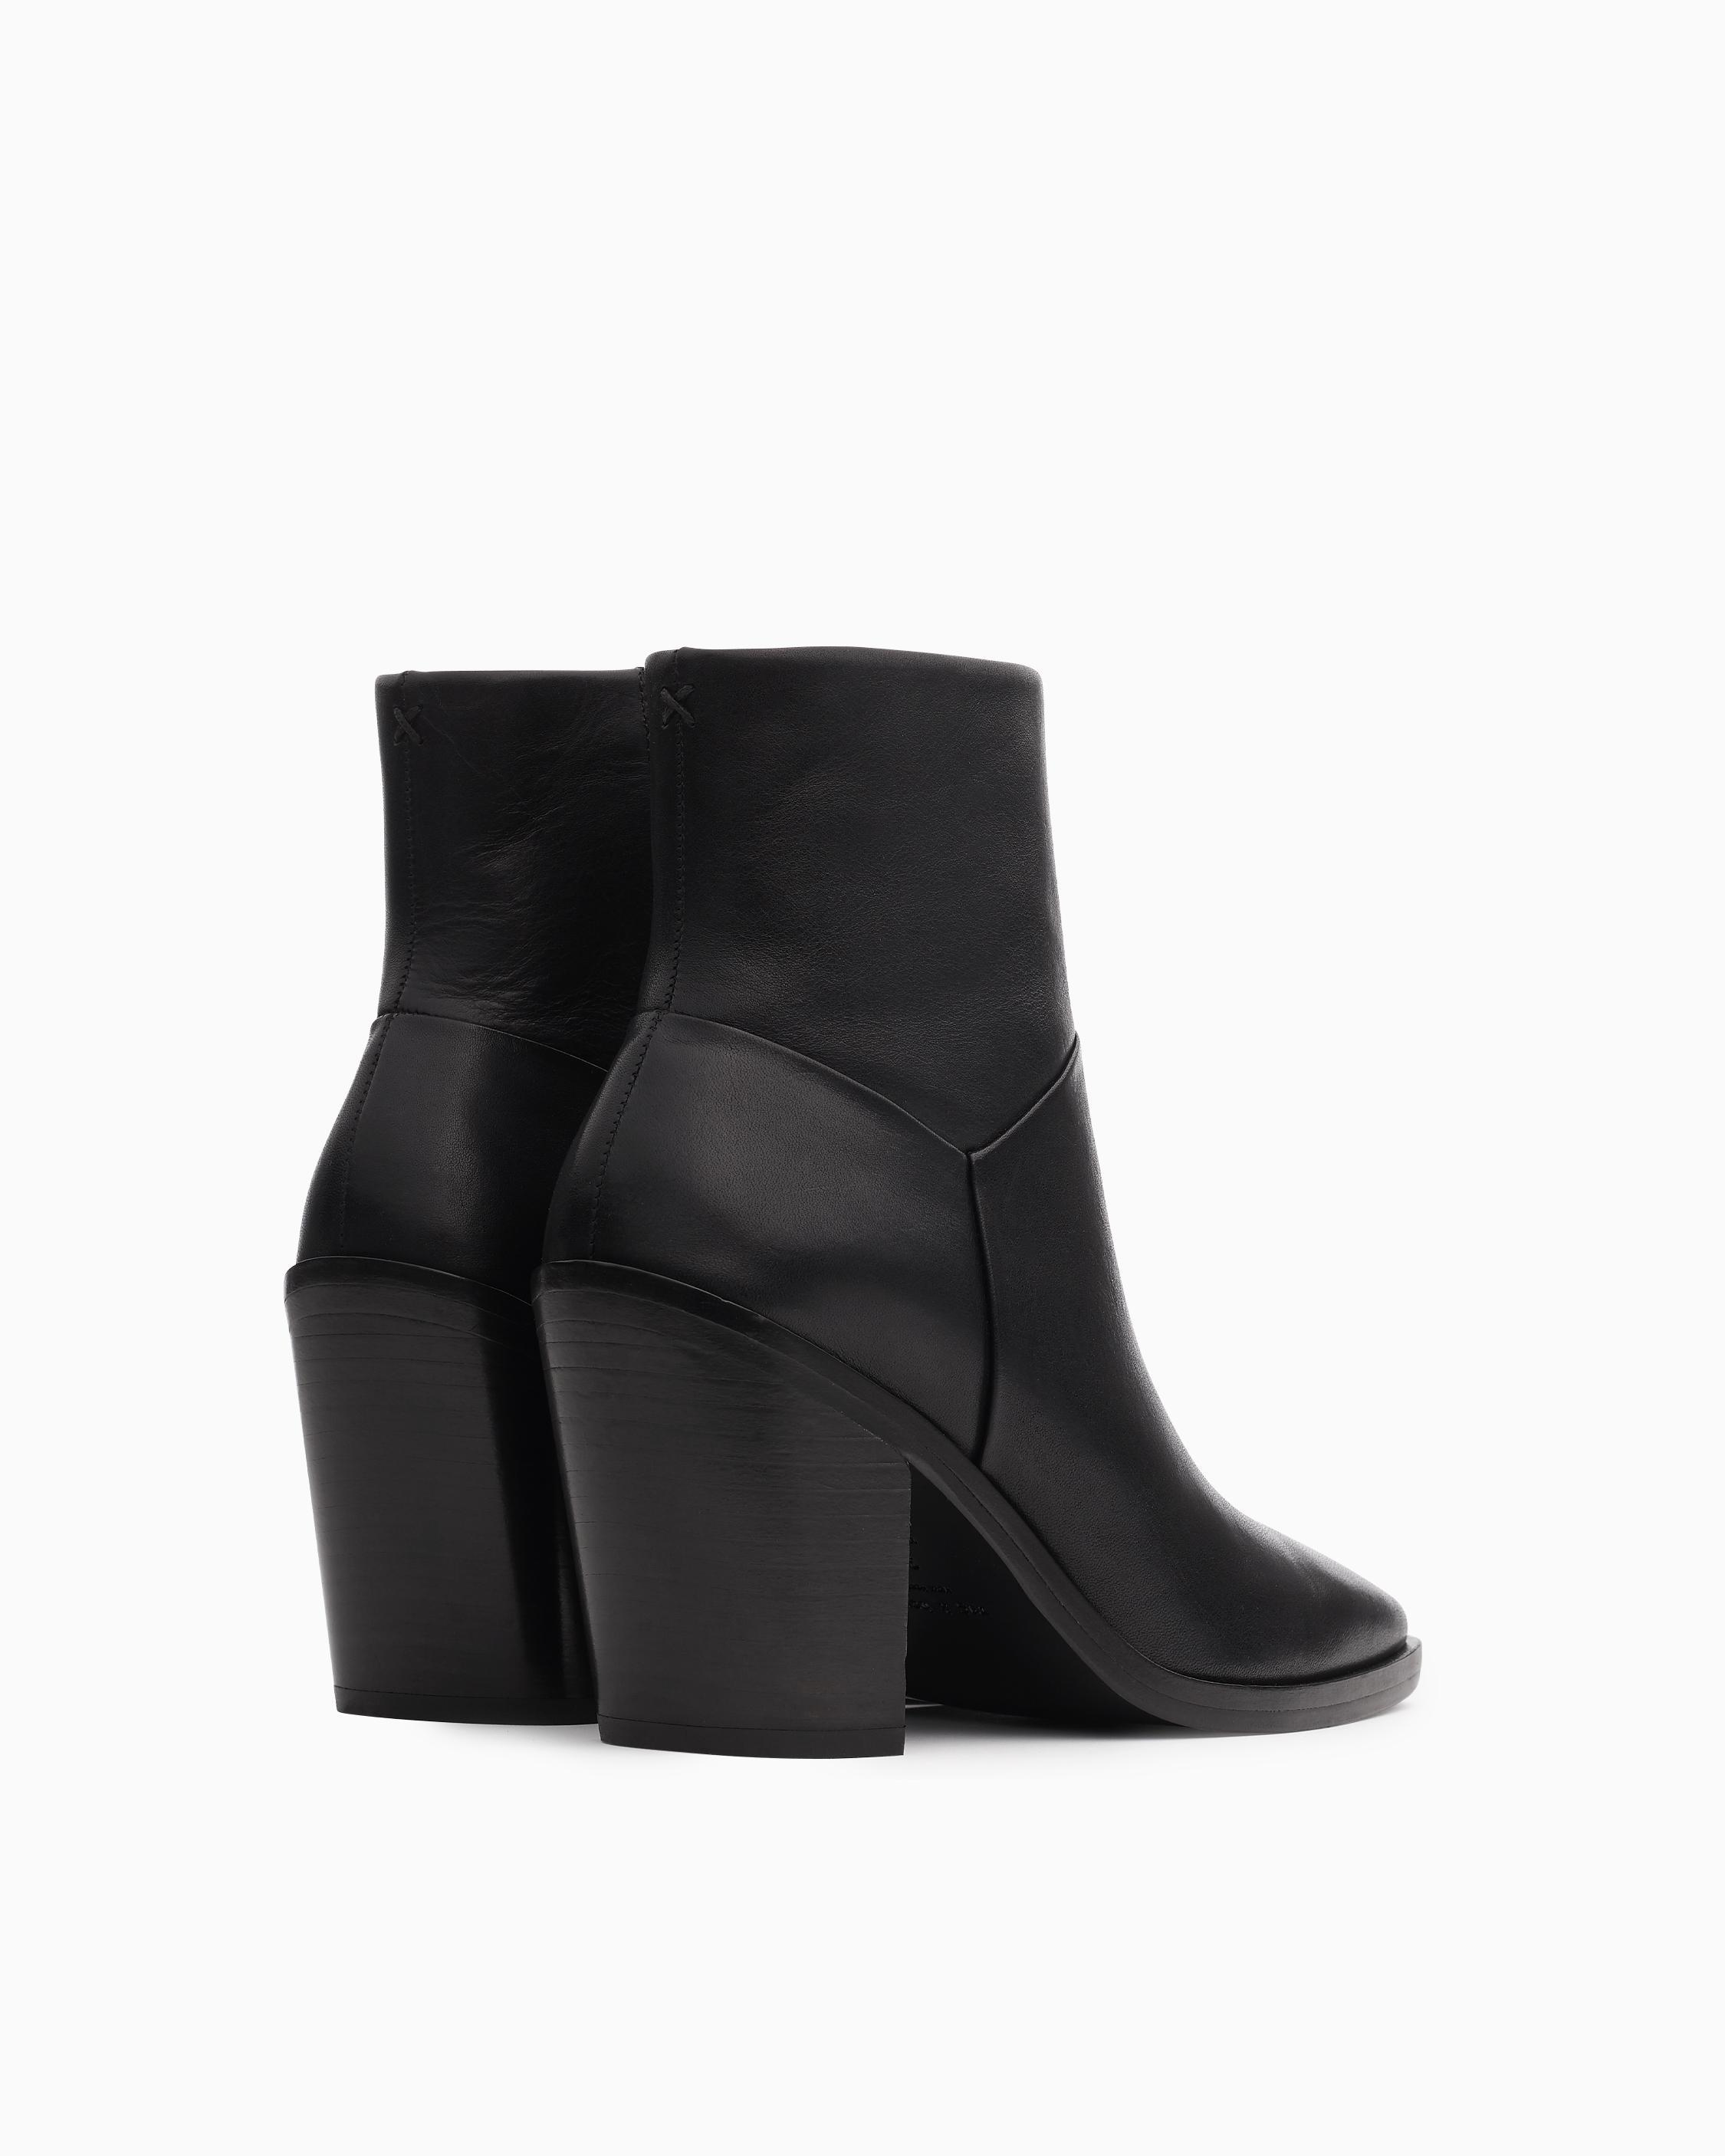 Axel zip up boot - leather 1